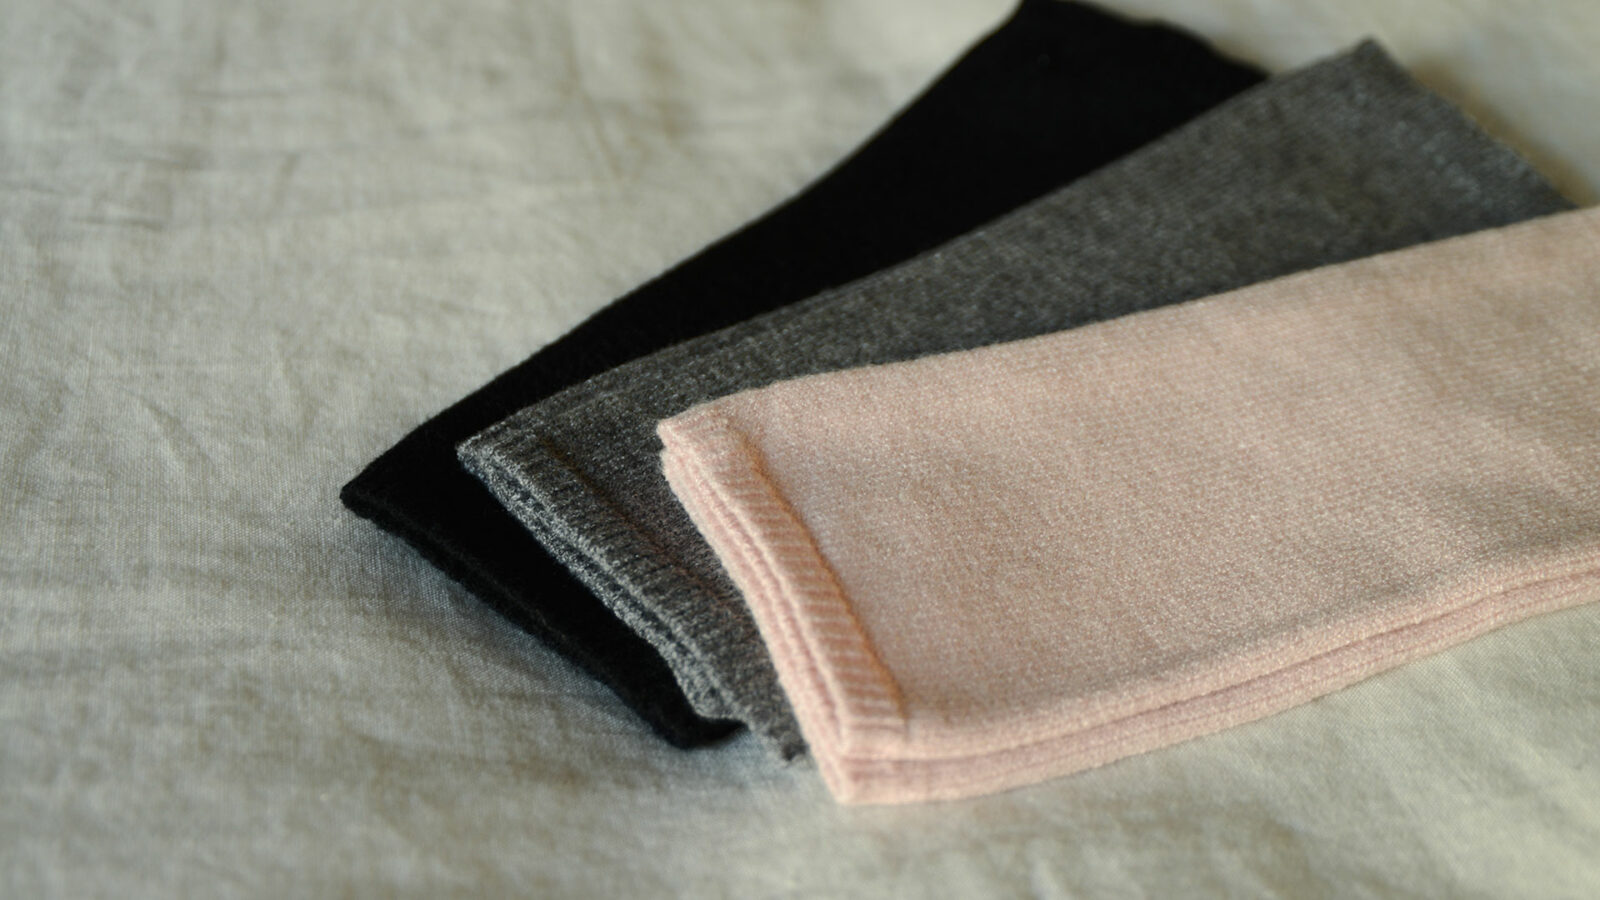 cosy knitted fingerless gloves in black, grey, and blush pink